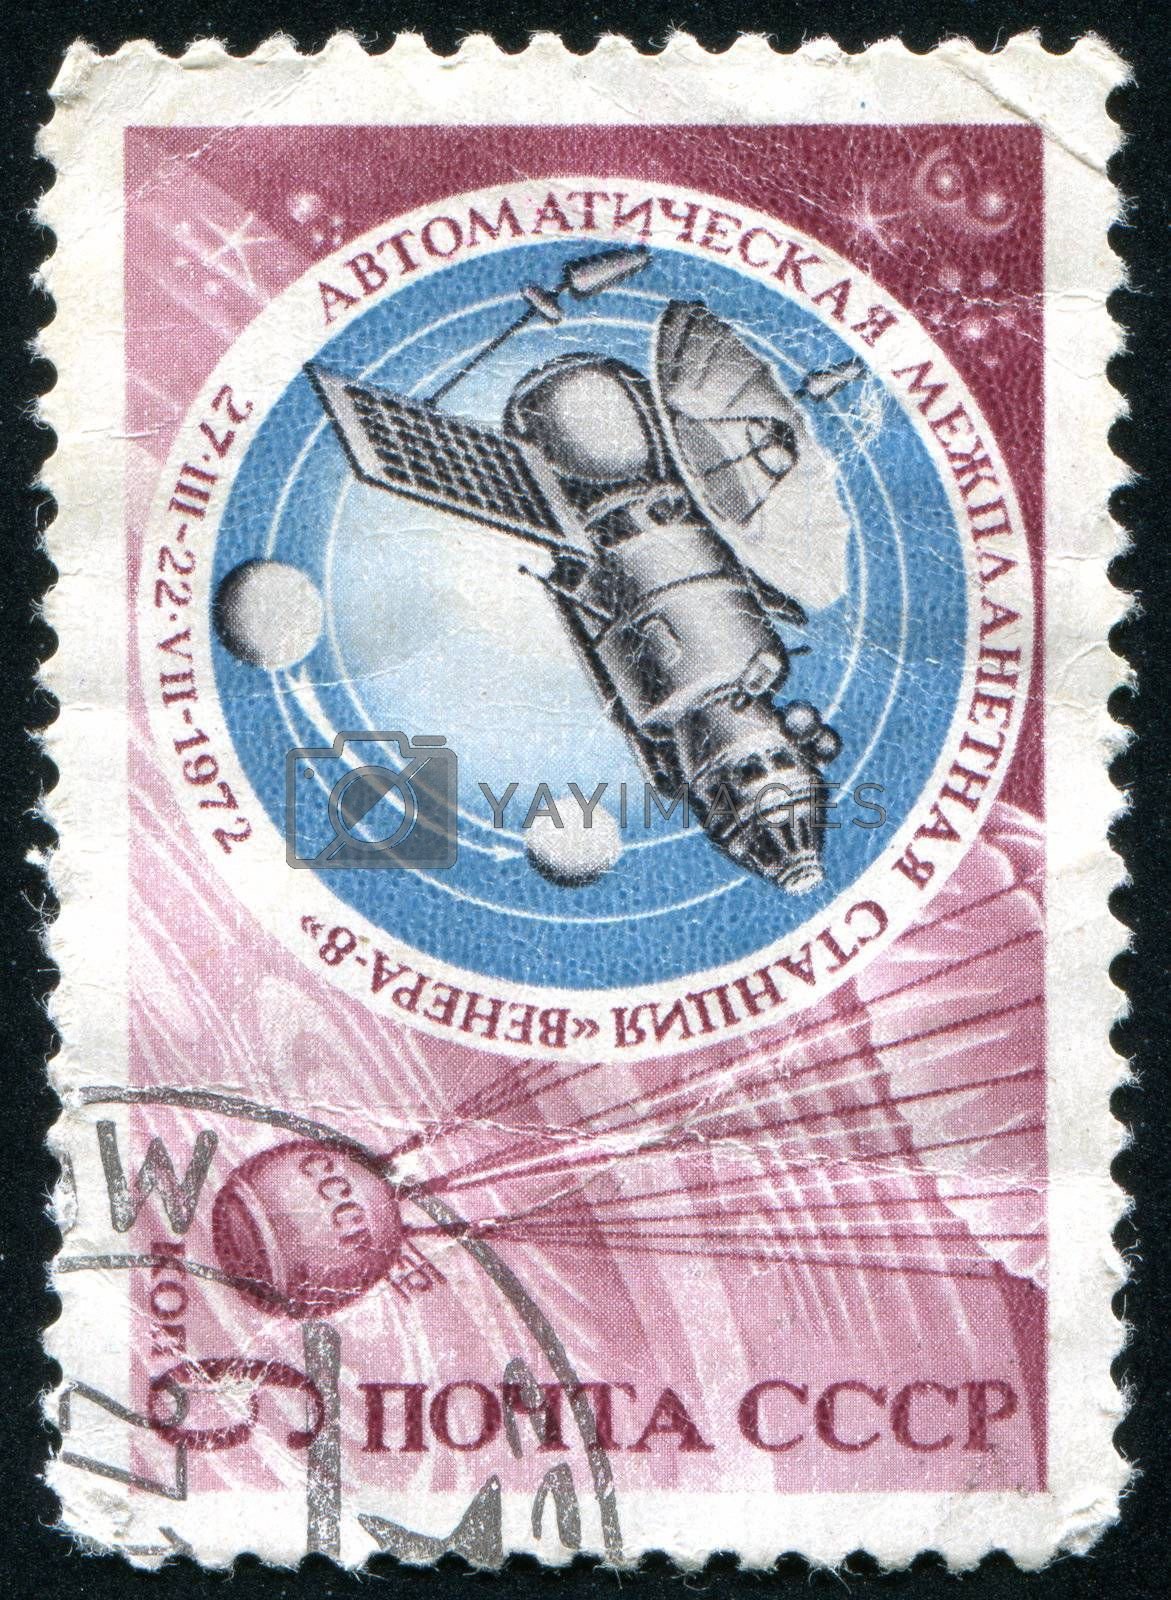 RUSSIA - CIRCA 1972: stamp printed by Russia, shows space satellite, circa 1972.